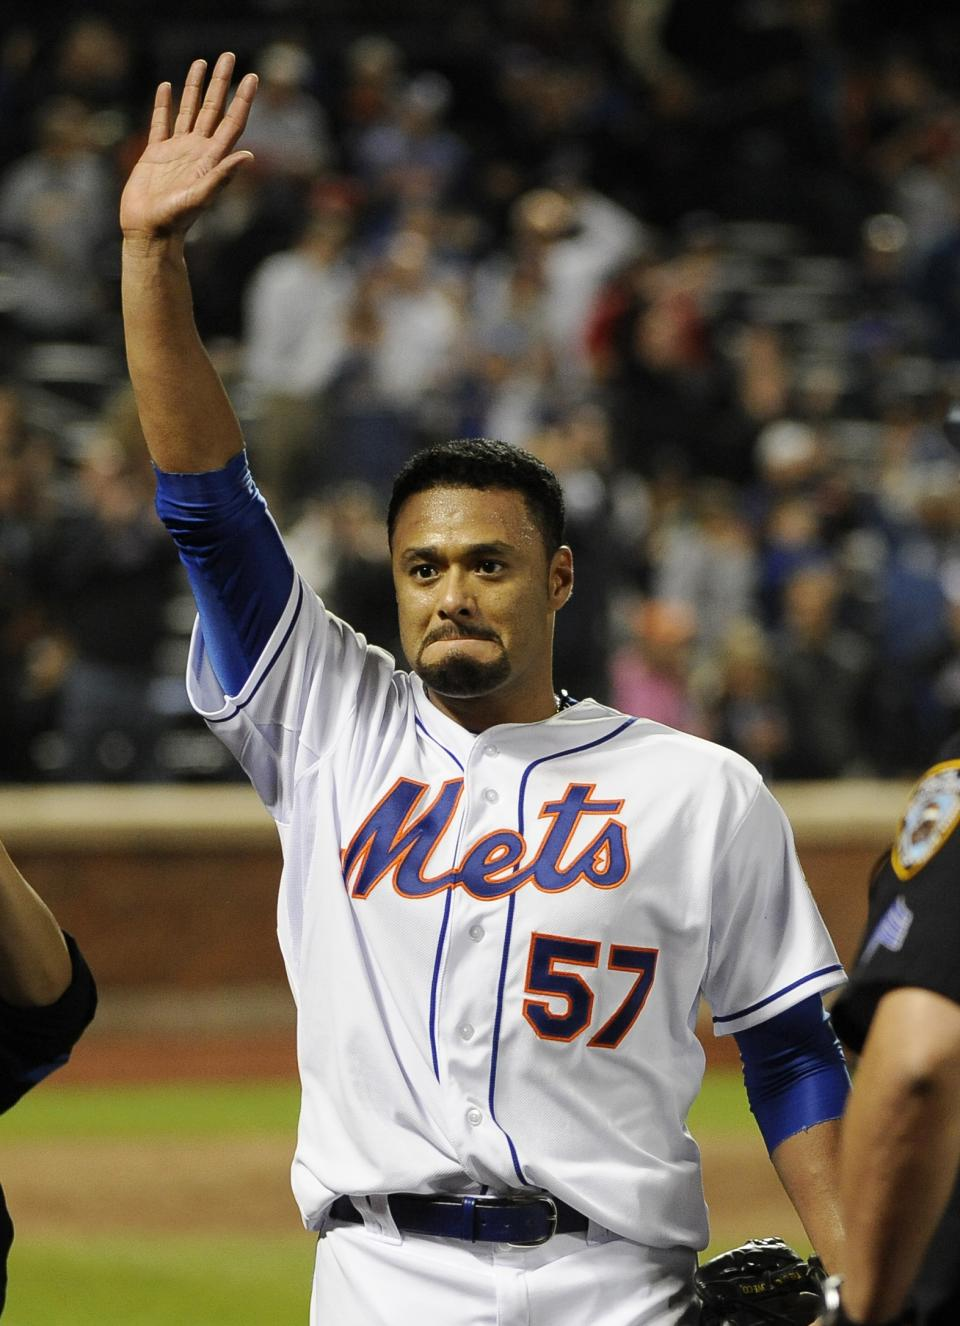 New York Mets starting pitcher Johan Santana (57) waves to fans after throwing a no-hitter against the St. Louis Cardinals in a baseball game on Friday, June 1, 2012, at Citi Field in New York. The Mets won 8-0. (AP Photo/Kathy Kmonicek)